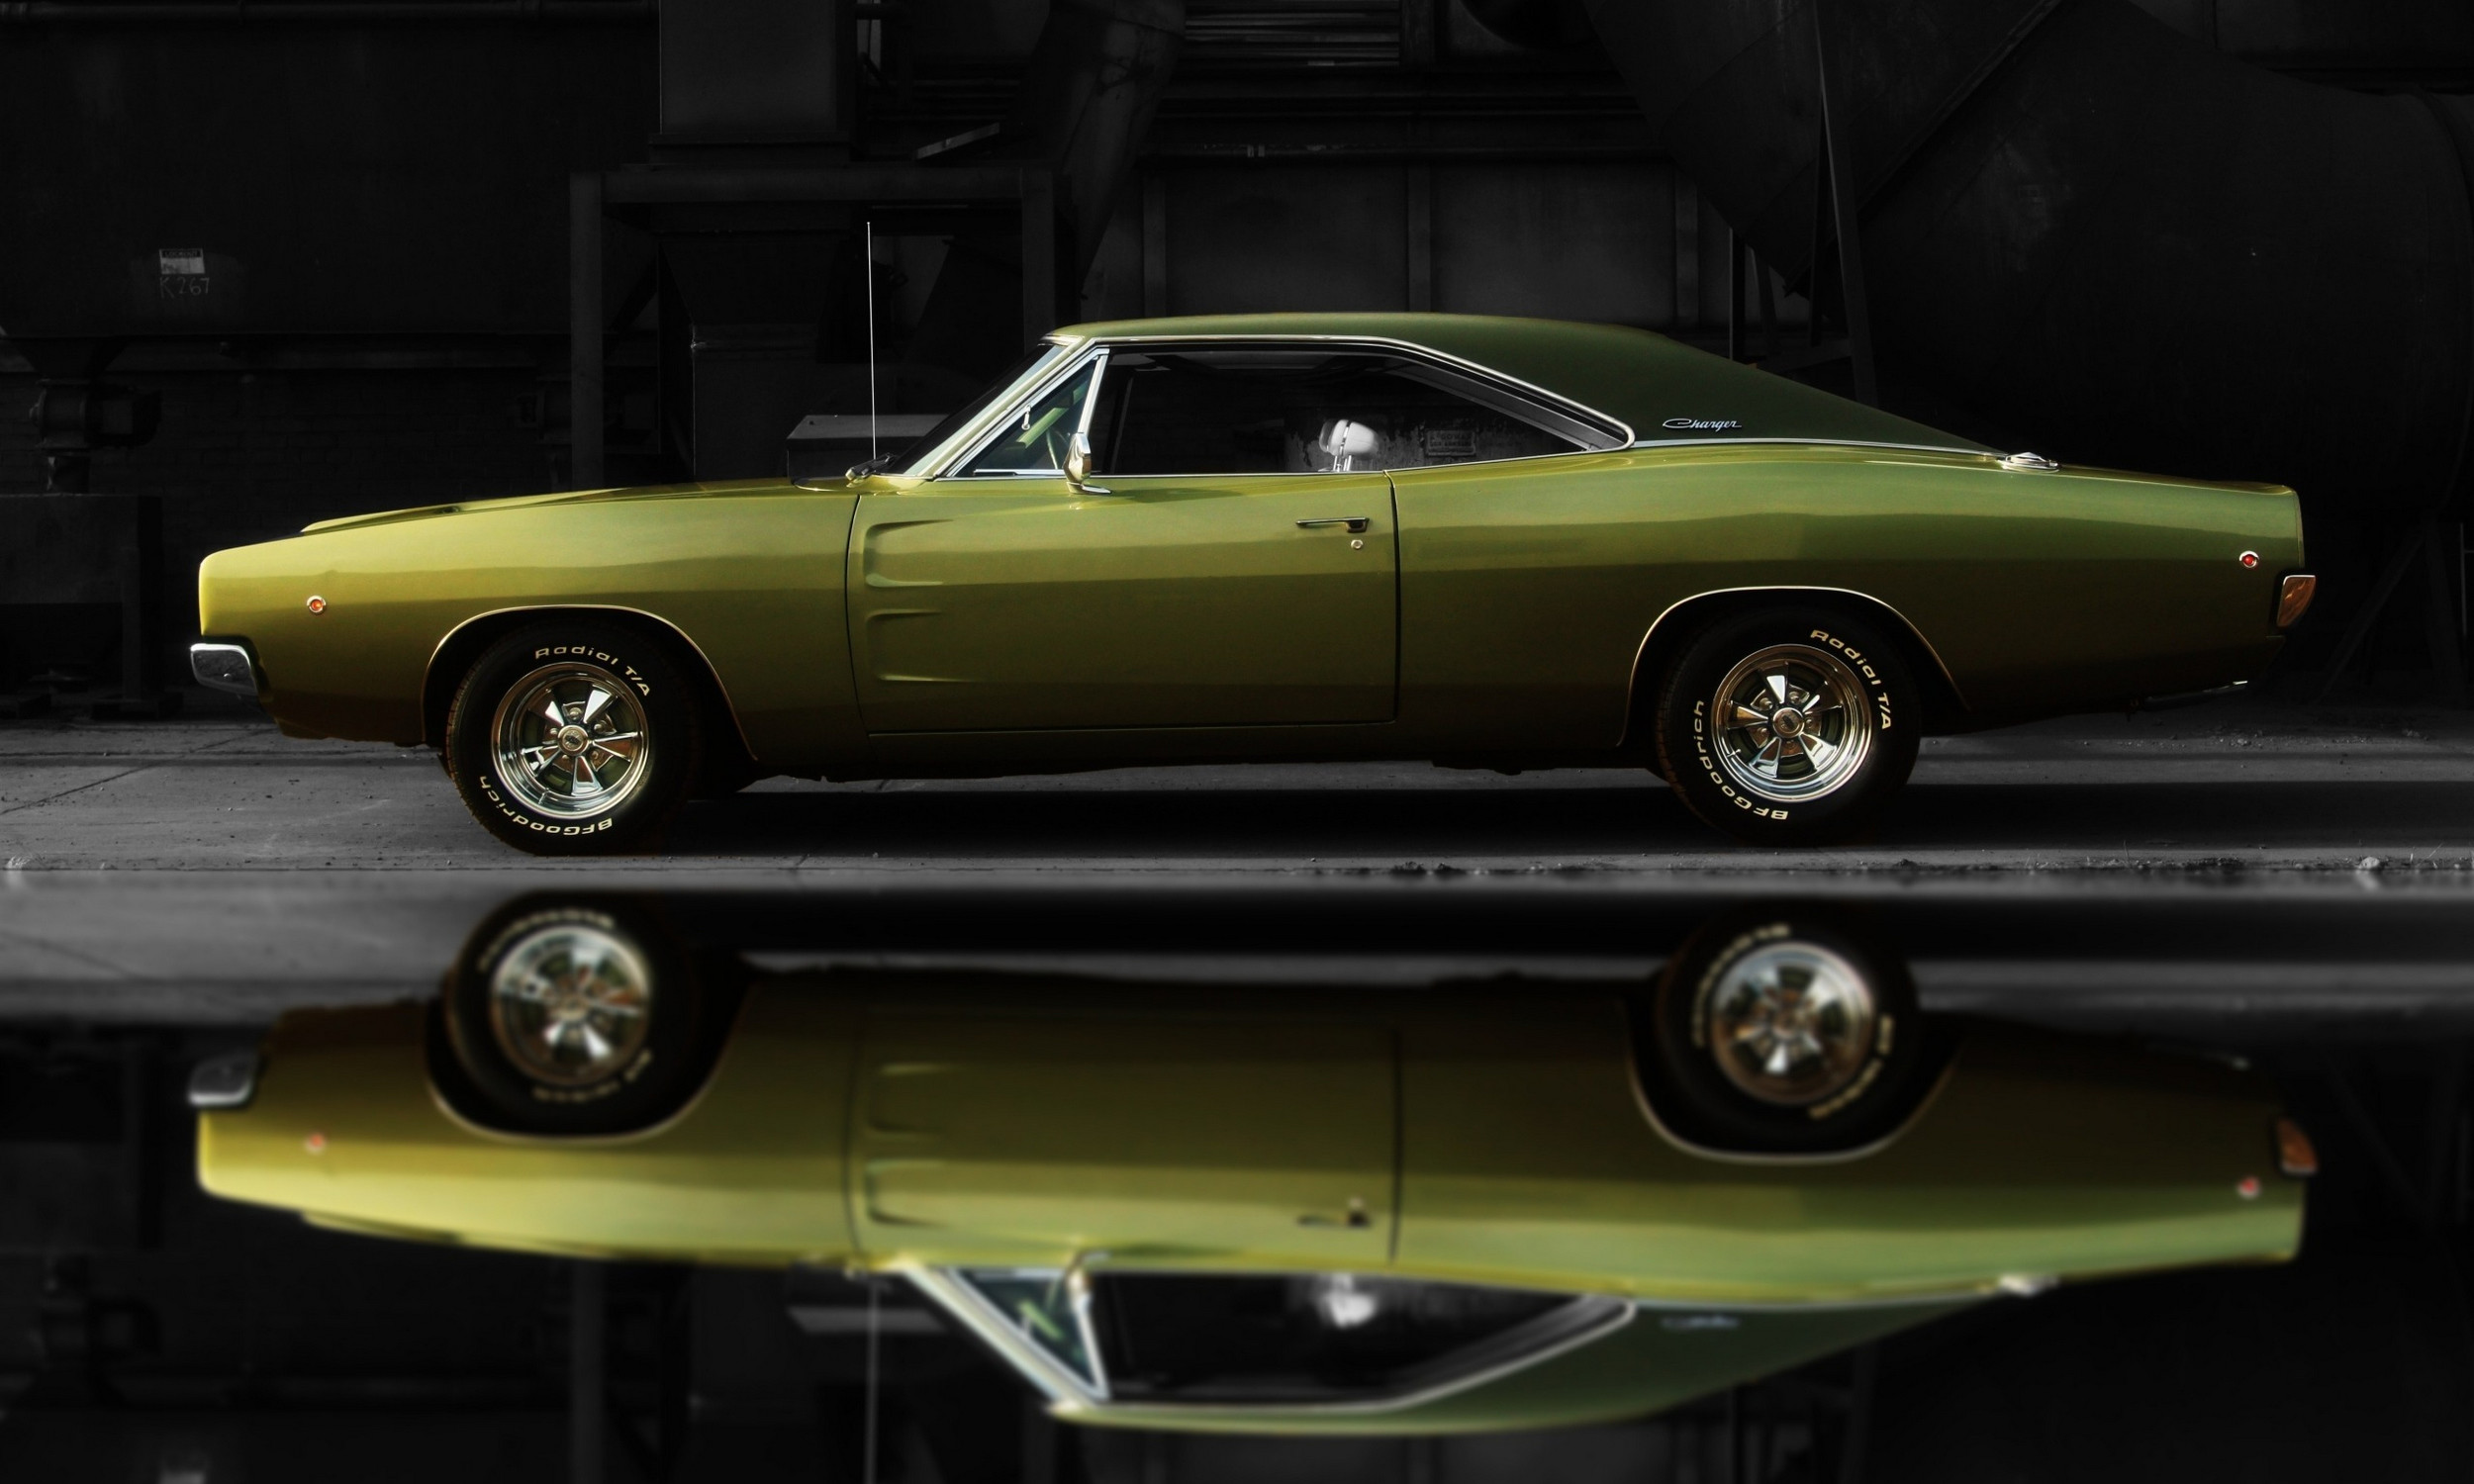 1968 Dodge Charger R/T Black Background Full Reflection – Photo by Scott  Crawford